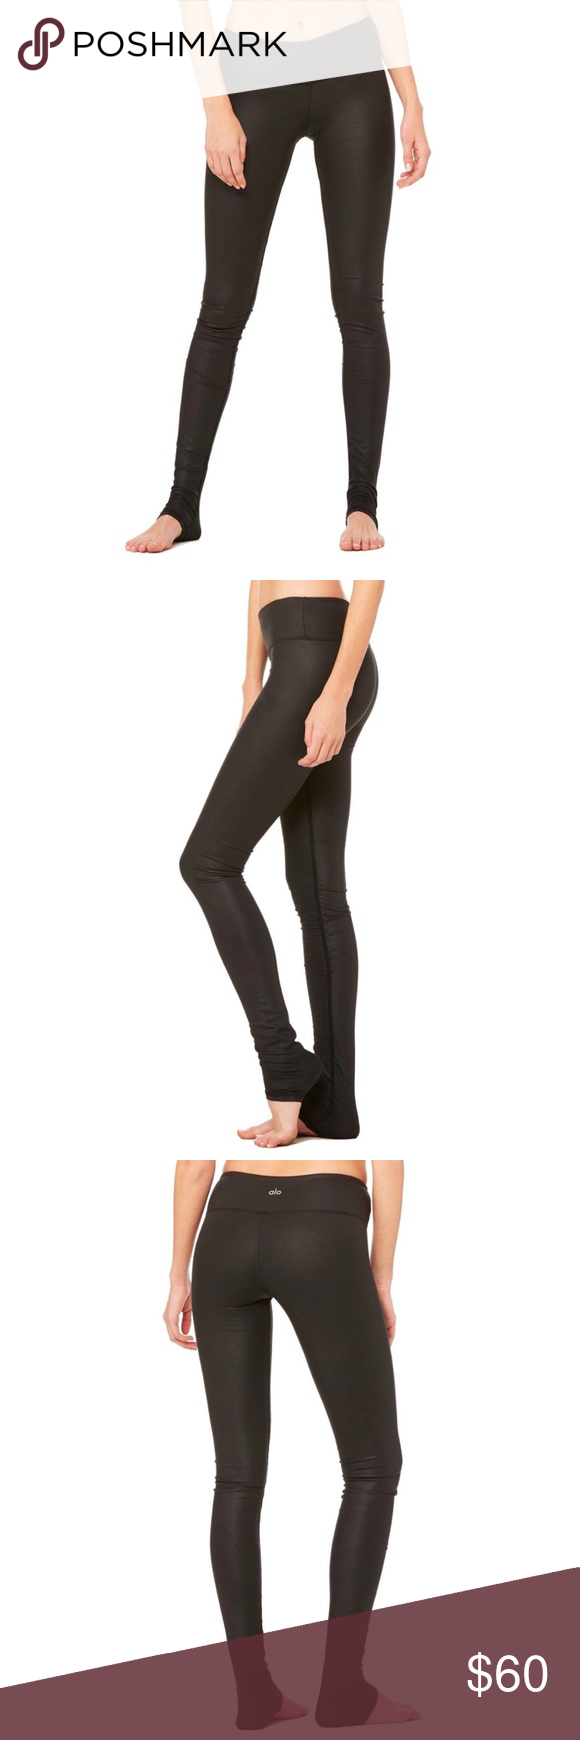 af740c0756a3f ALO Yoga Idol Legging - Black Performance Leather Ruching at the ankle,  compression fabric,